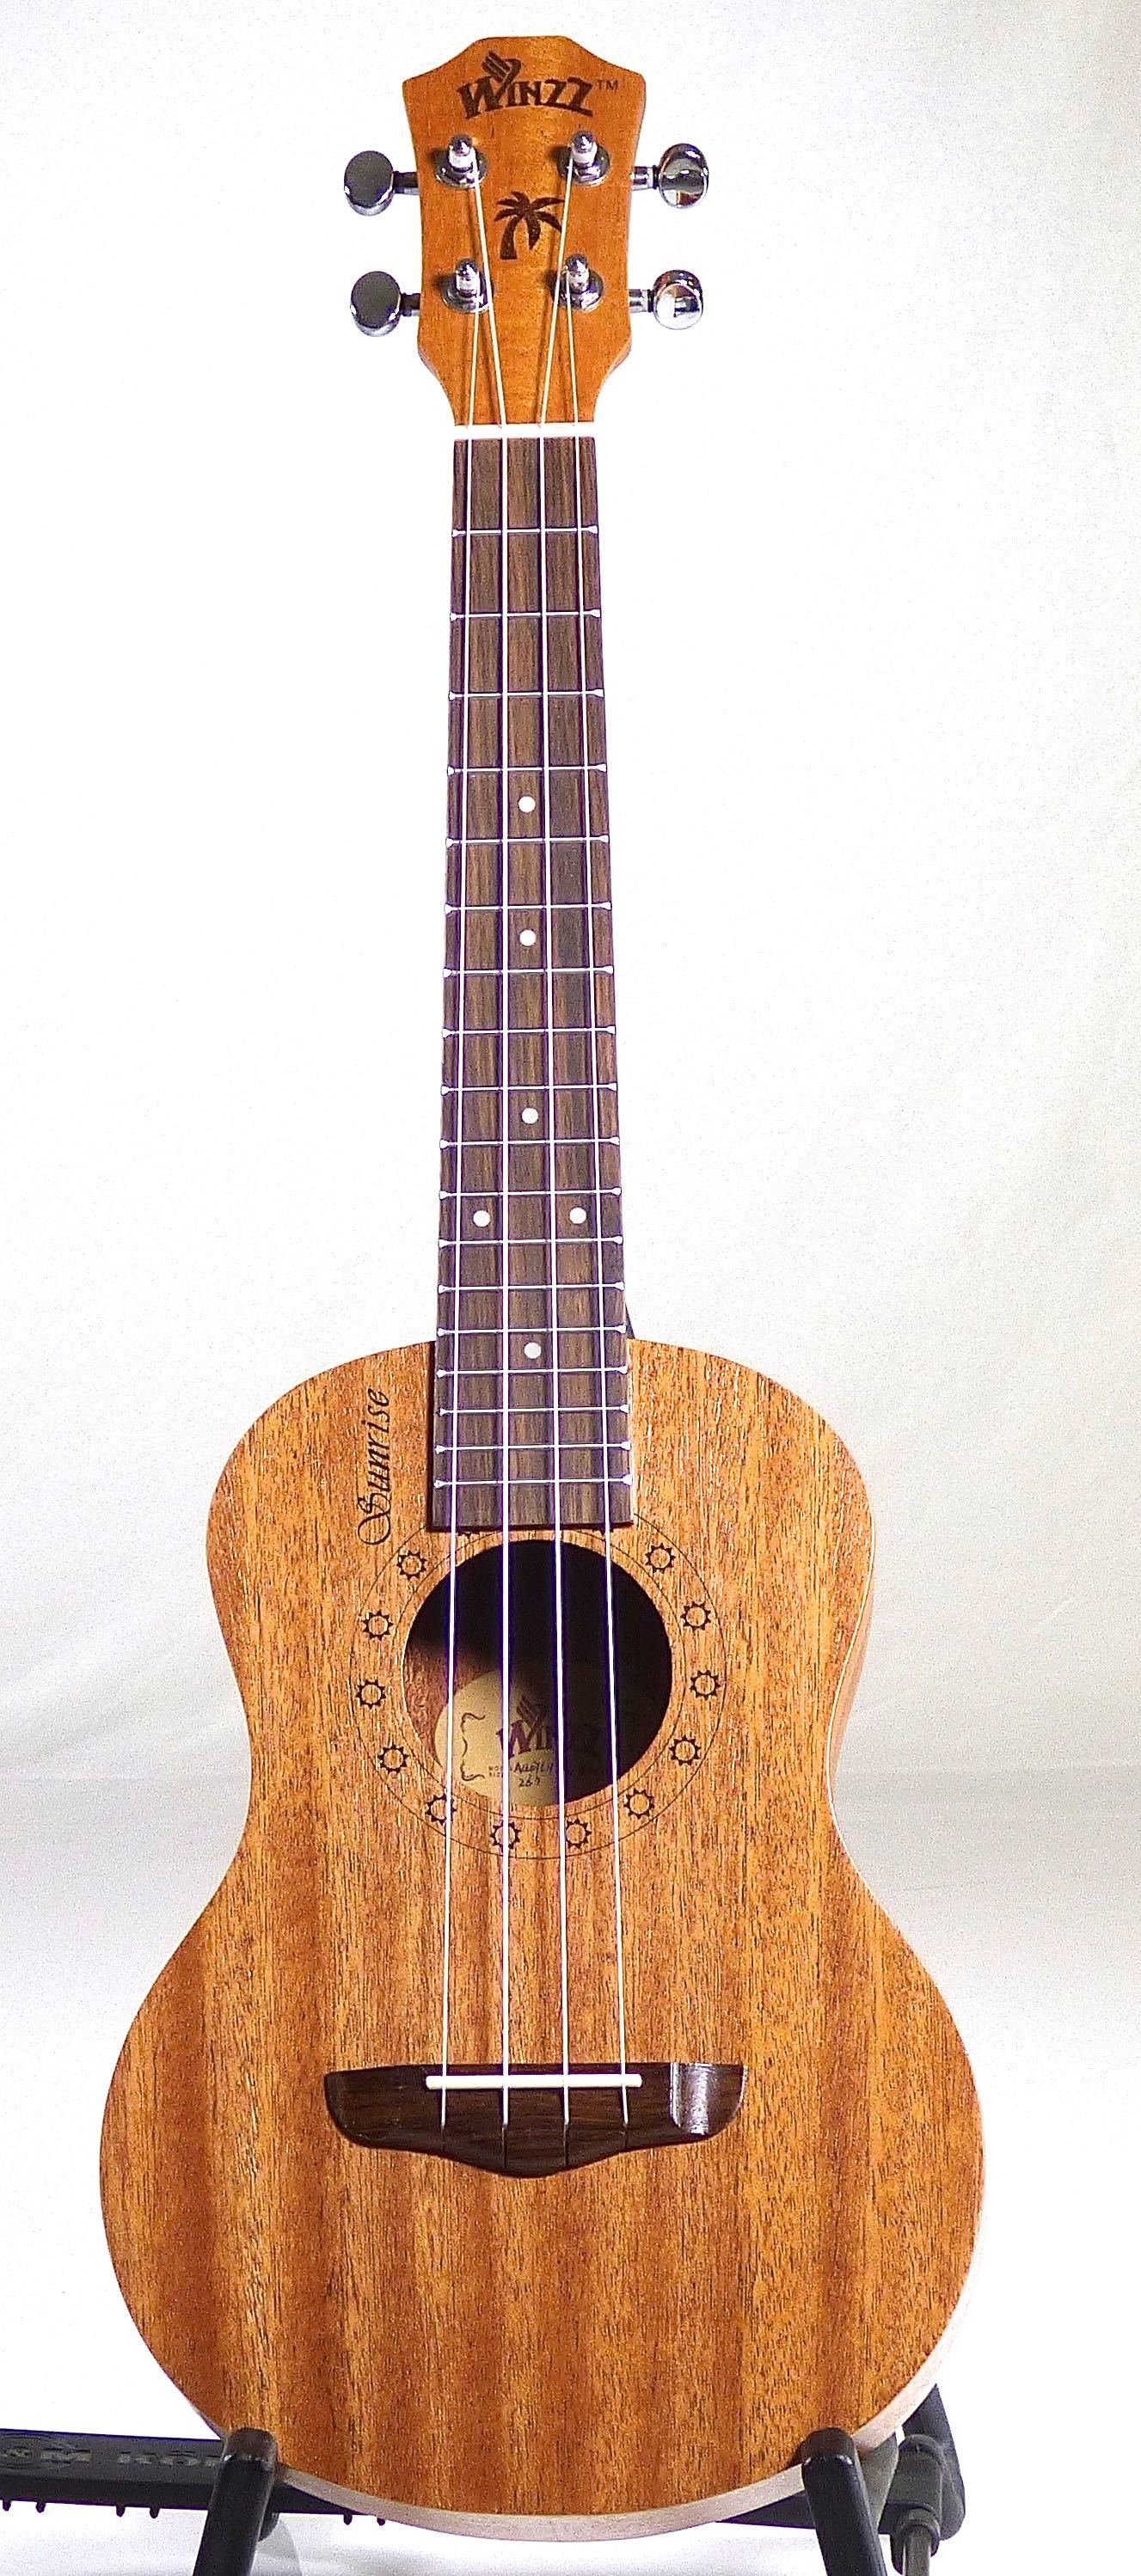 Winzz Sunrise Tenor Ukulele - All Mahogany 00198